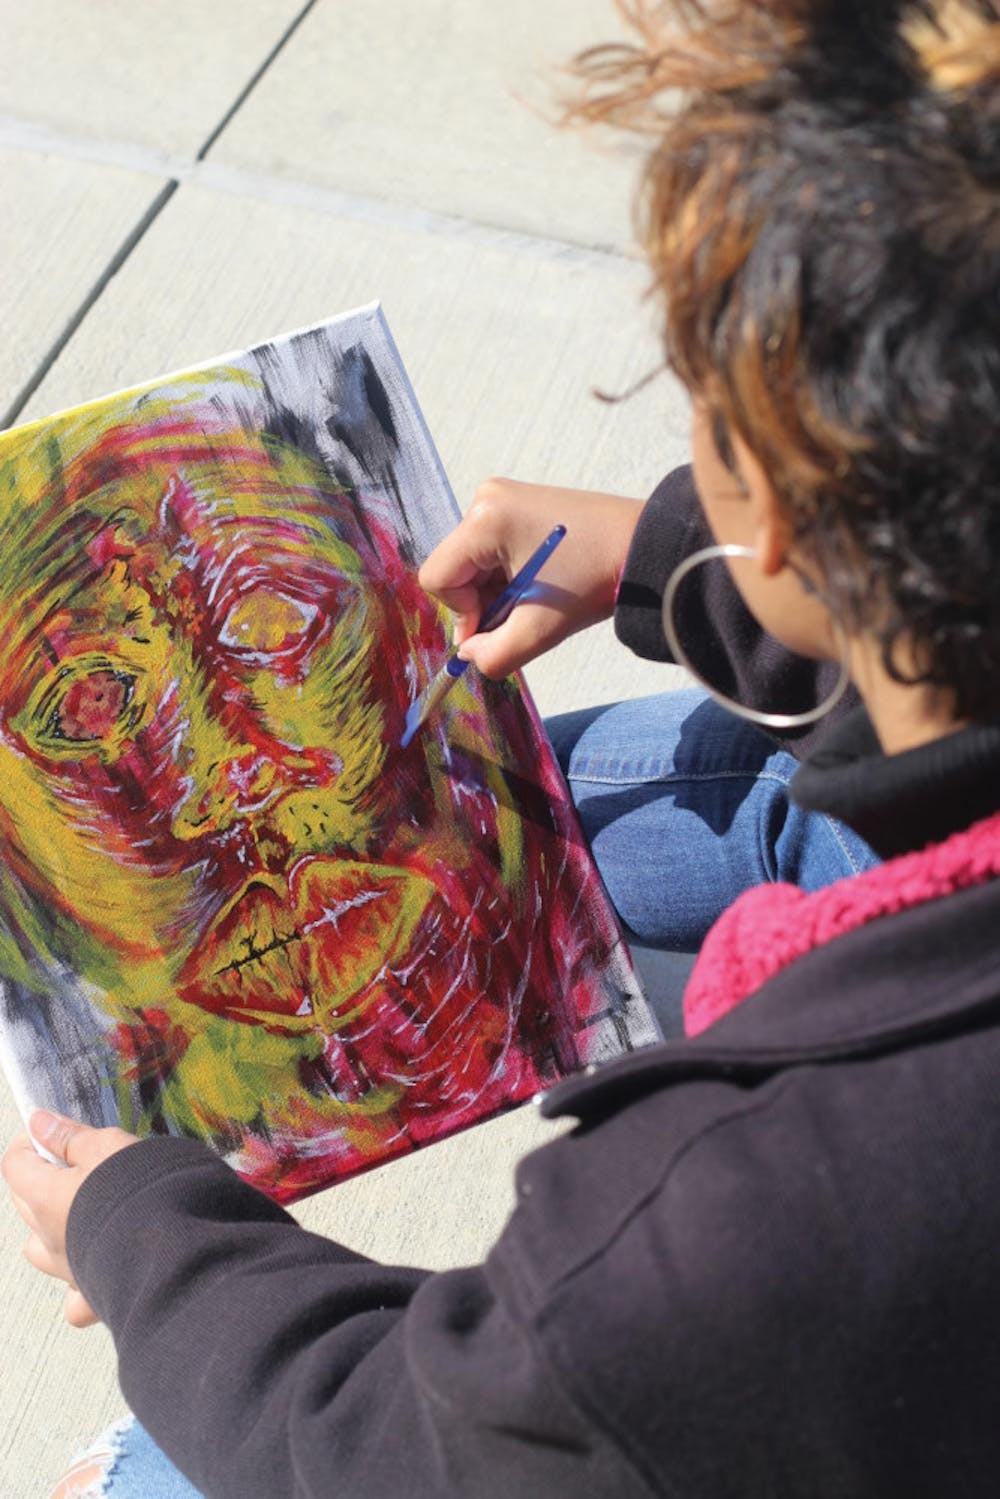 A student works on a painting.